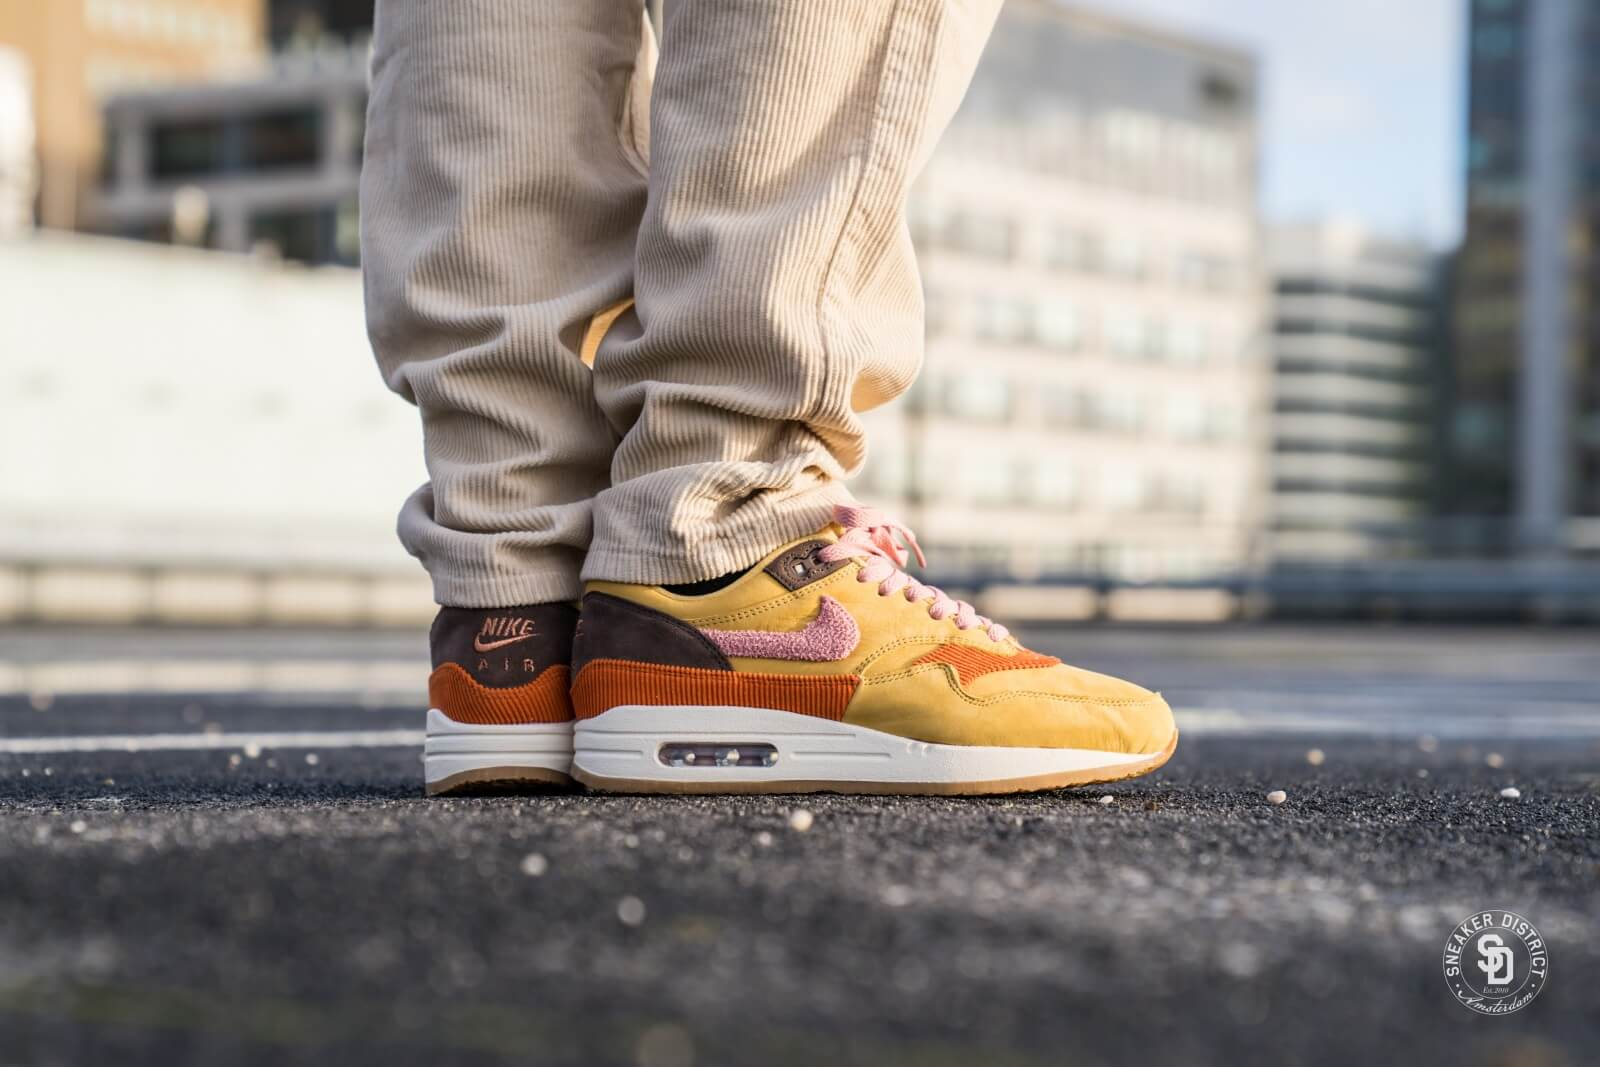 feb456e9a3 ... sweden nike air max 1 wheat gold rust pink baroque brown 79da0 943ff